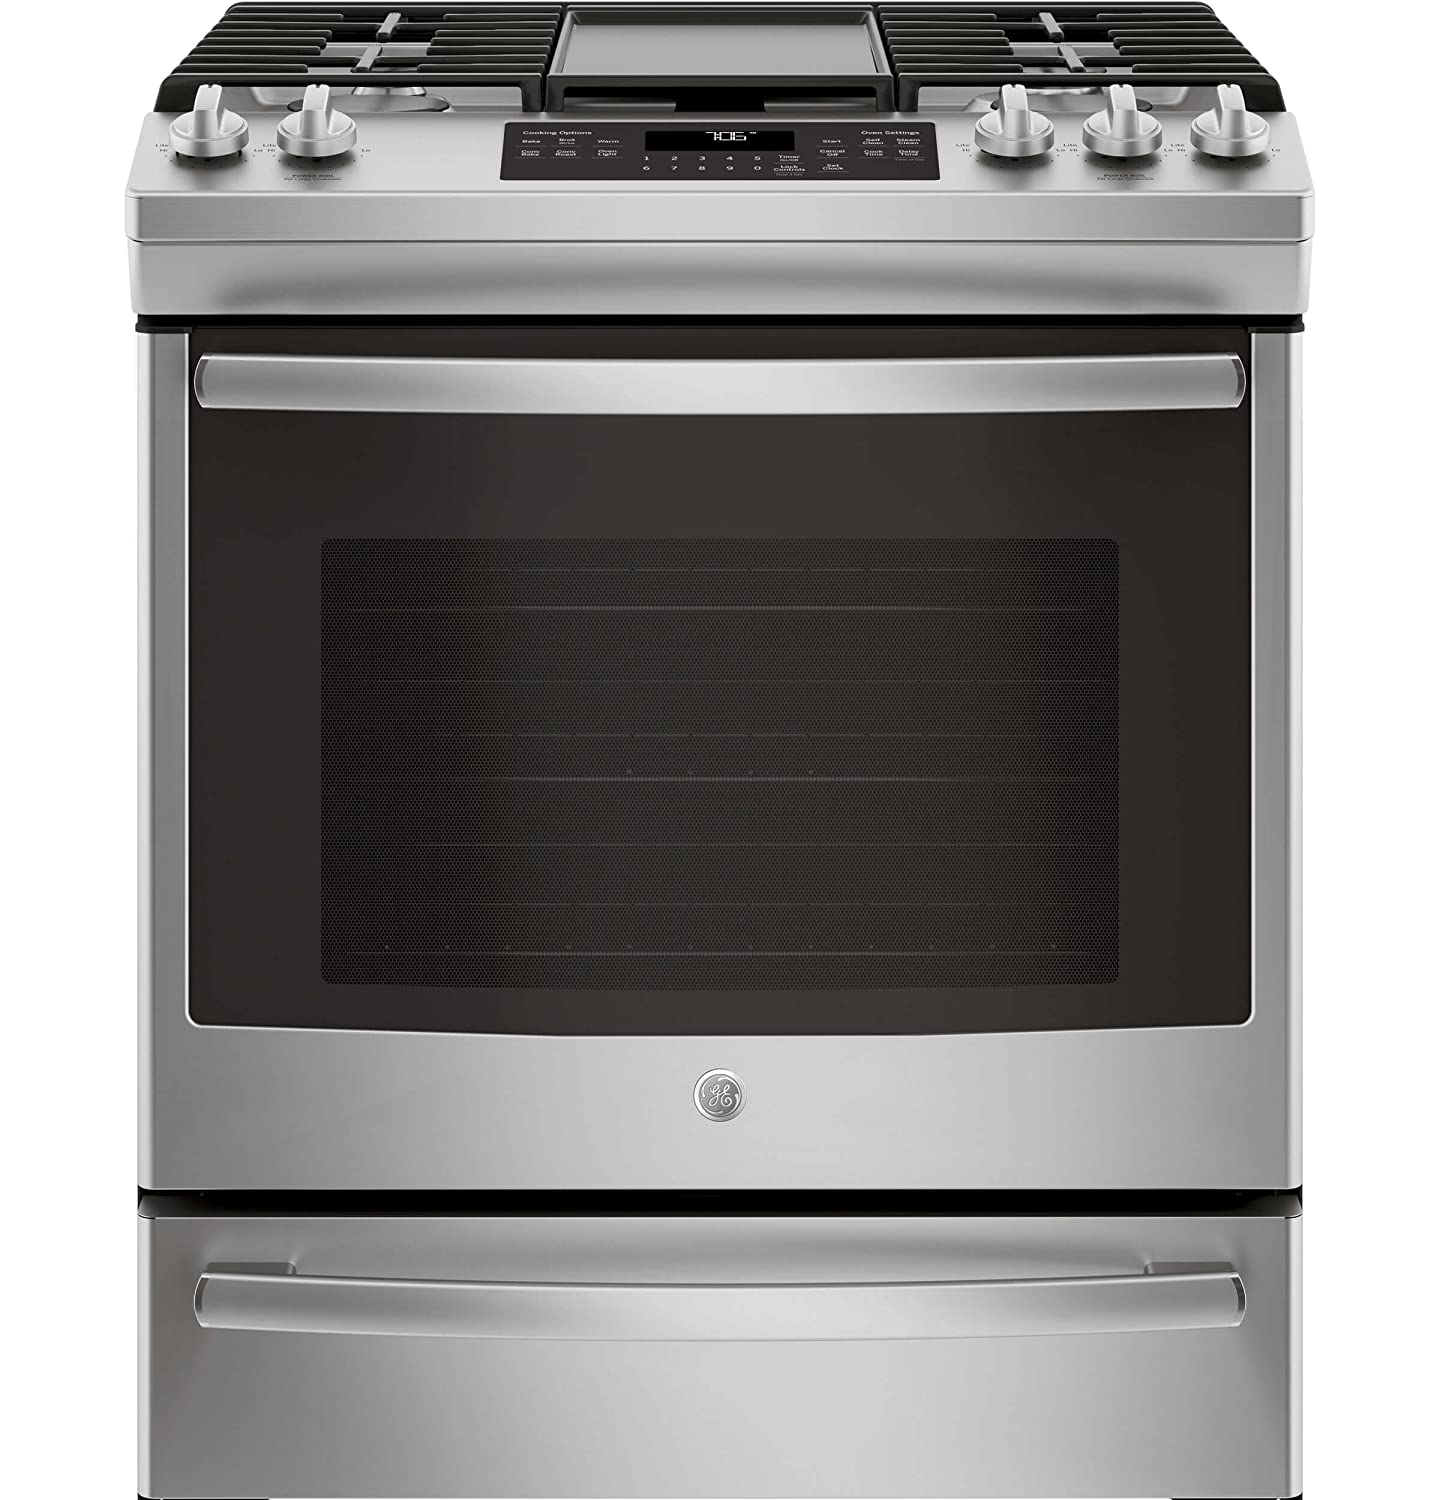 GE JGS760SELSS 30 Inch Slide-in Gas Range with Sealed Burner Cooktop, 5.6 cu. ft. Primary Oven Capacity, in Stainless Steel G.E.